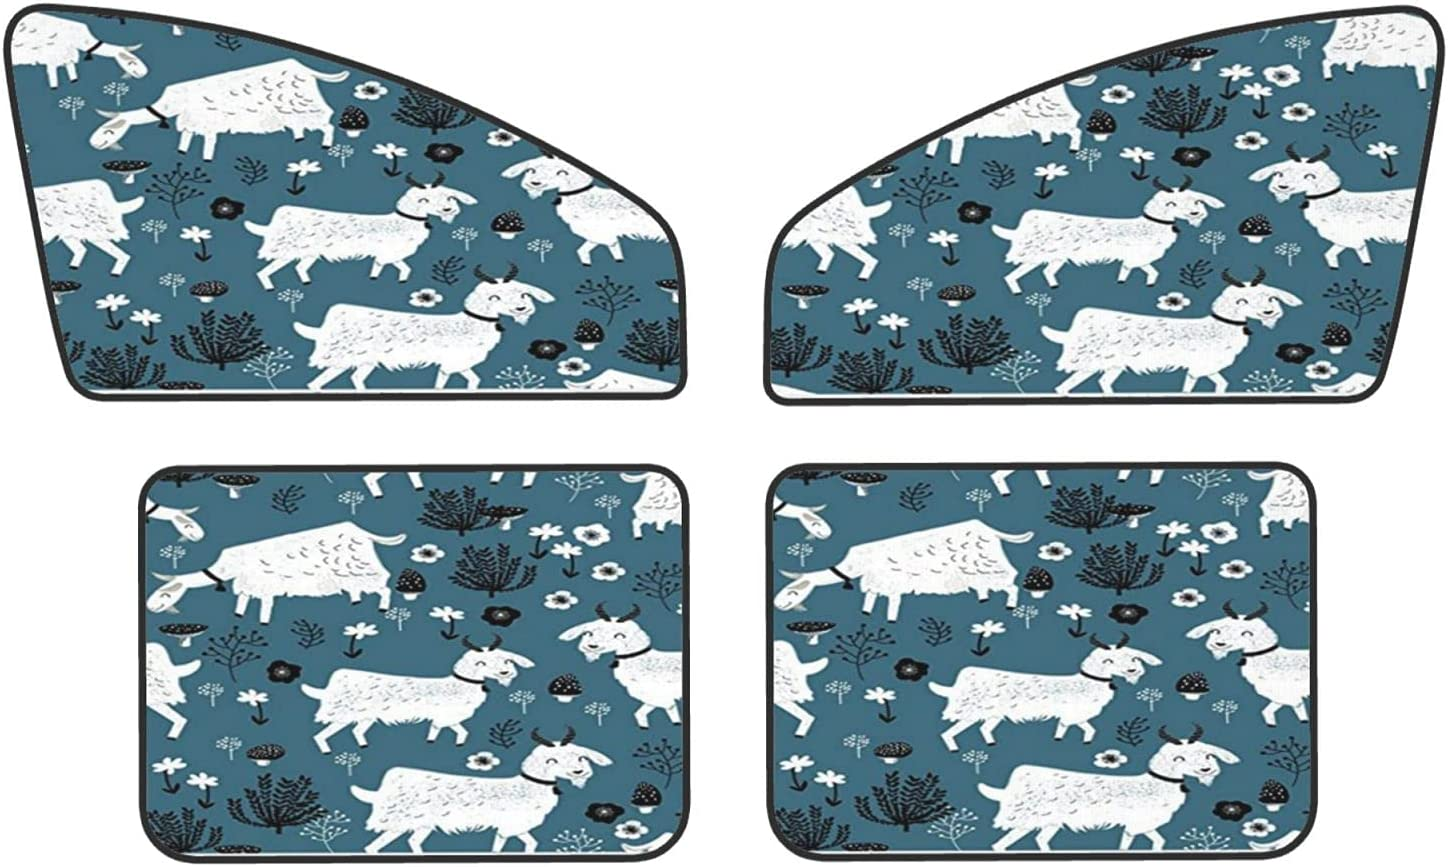 Goats Baby Farm Animal Car Sunshades shopping discount Magnets Covers Protect Priv